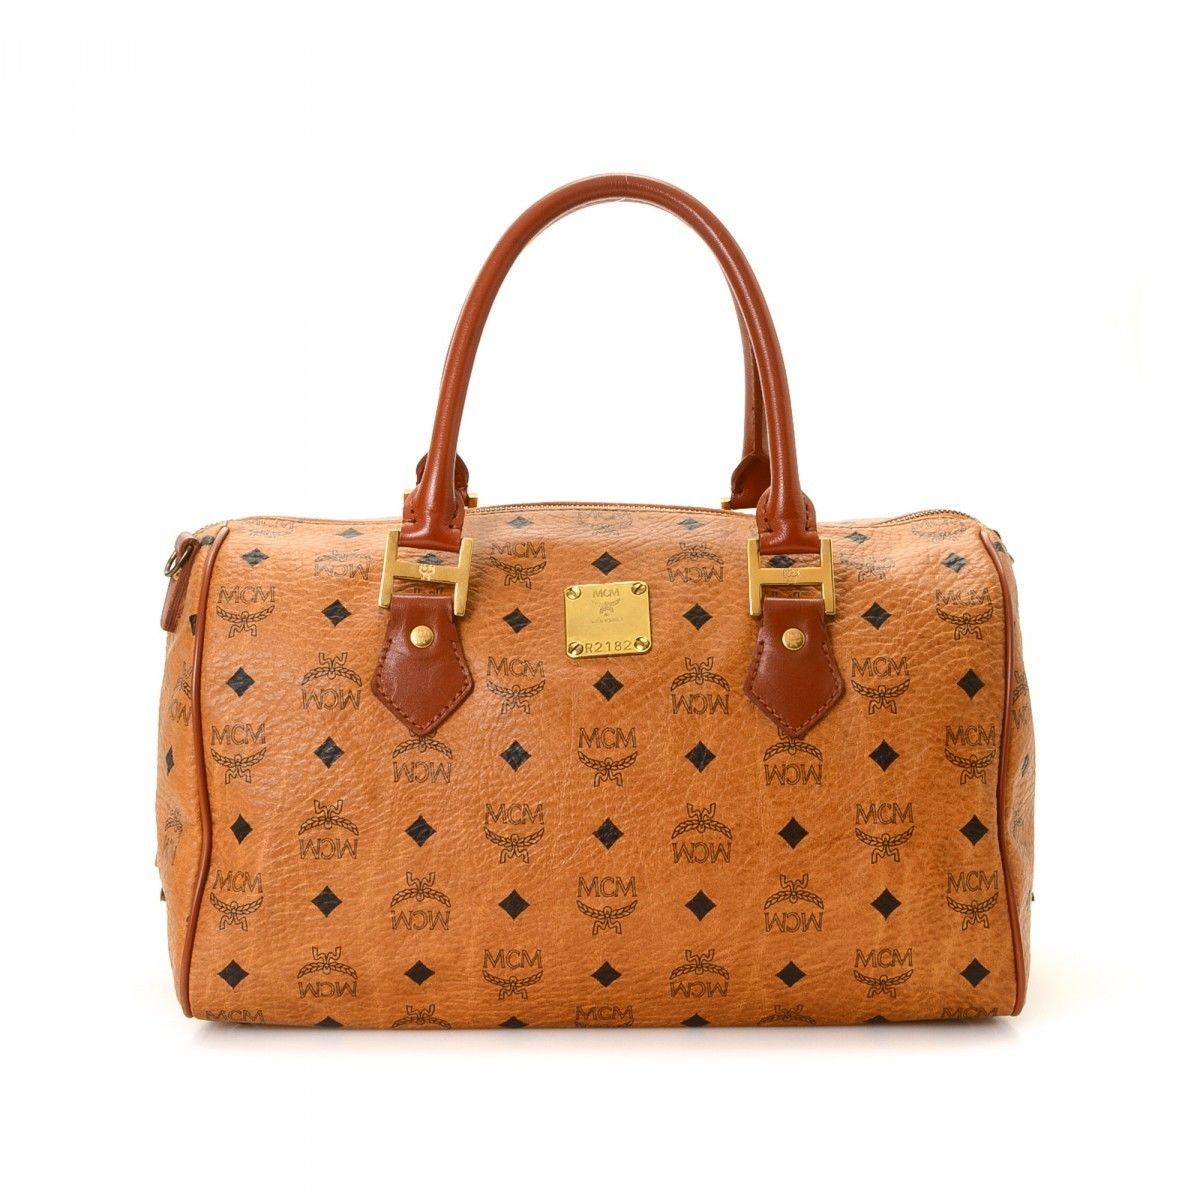 MCM Pre-owned - Leather bag iqb34